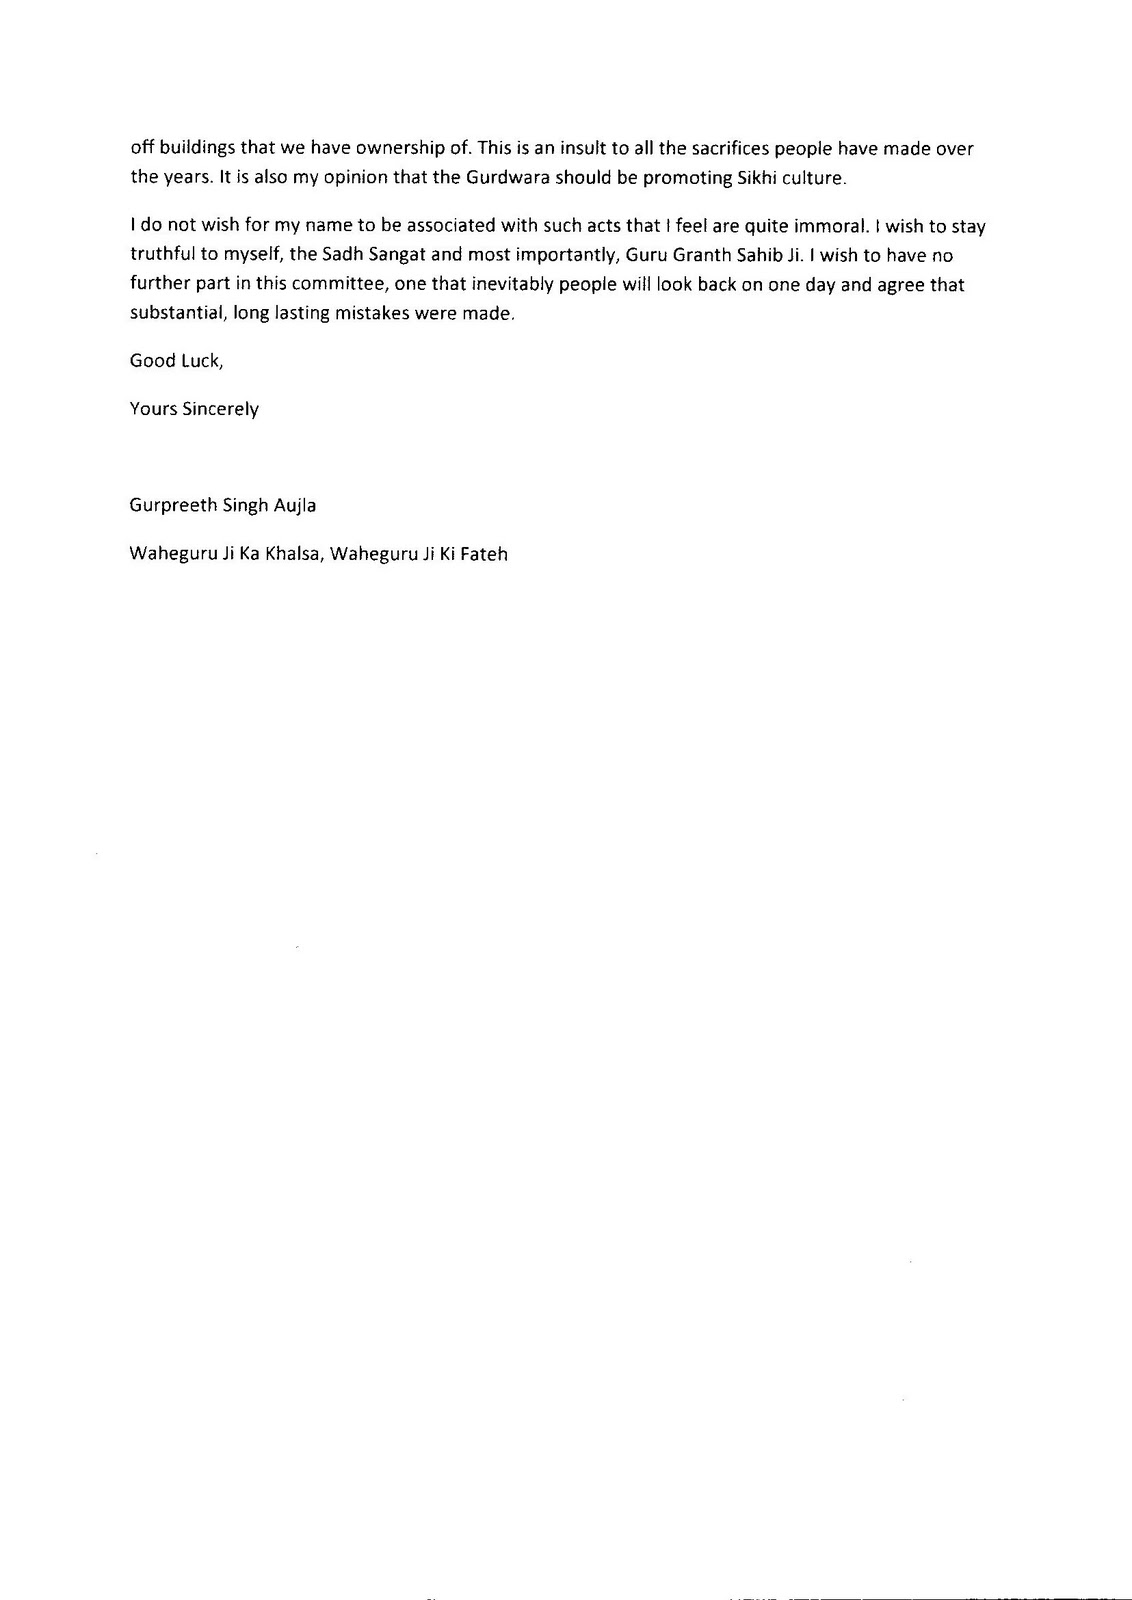 Exceptional Letter Of Resignation From A Committee Bartender Objective Statement